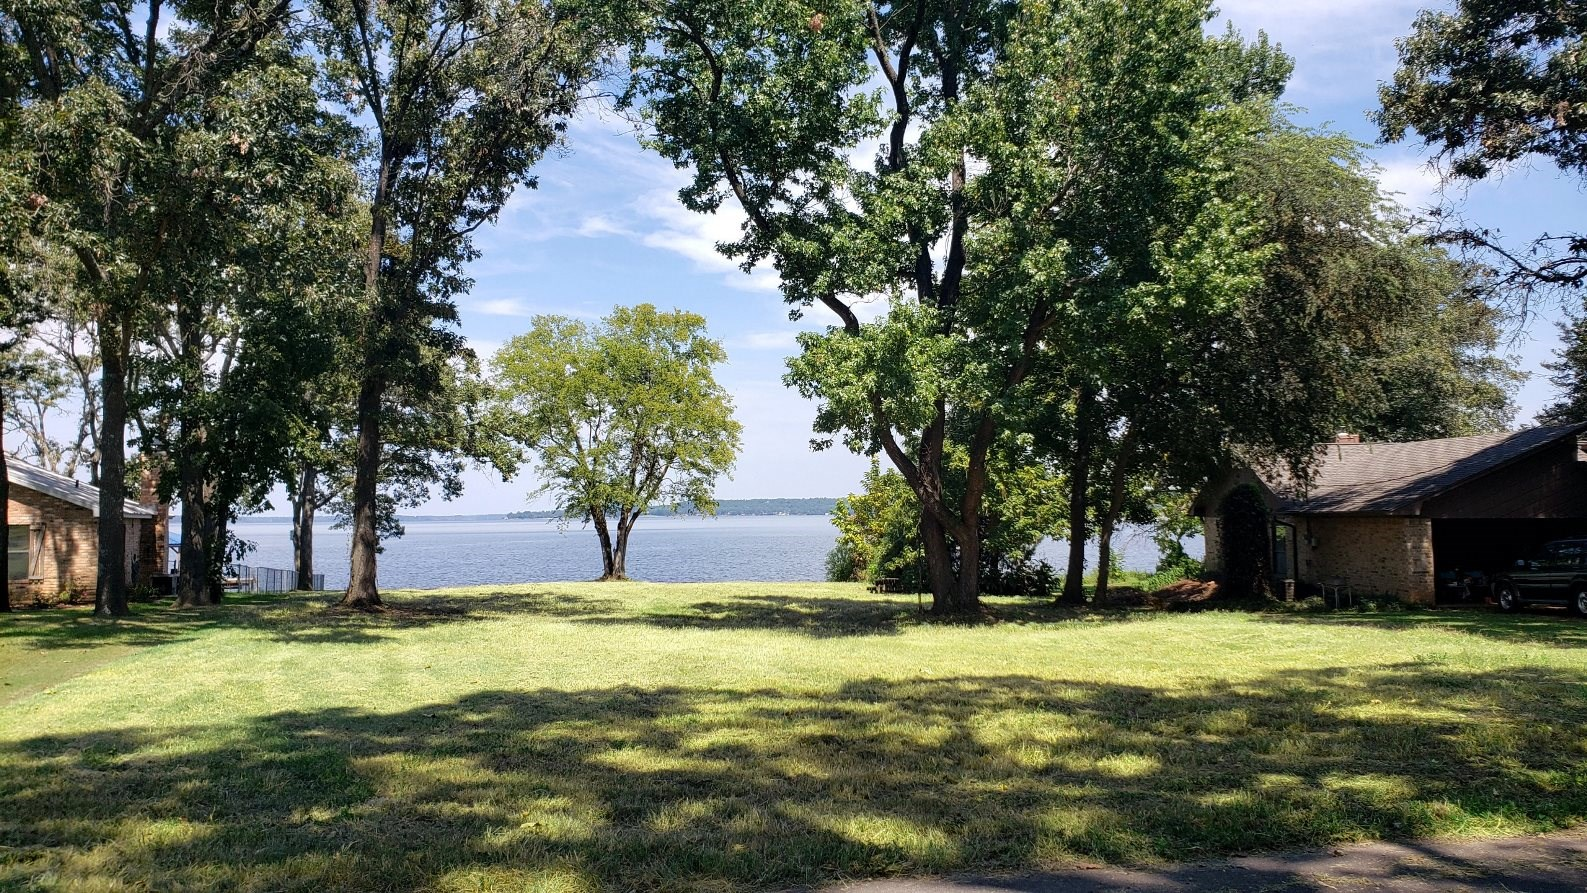 LAKE PALESTINE WATERFRONT LOT FOR SALE | EAST TX REAL ESTATE